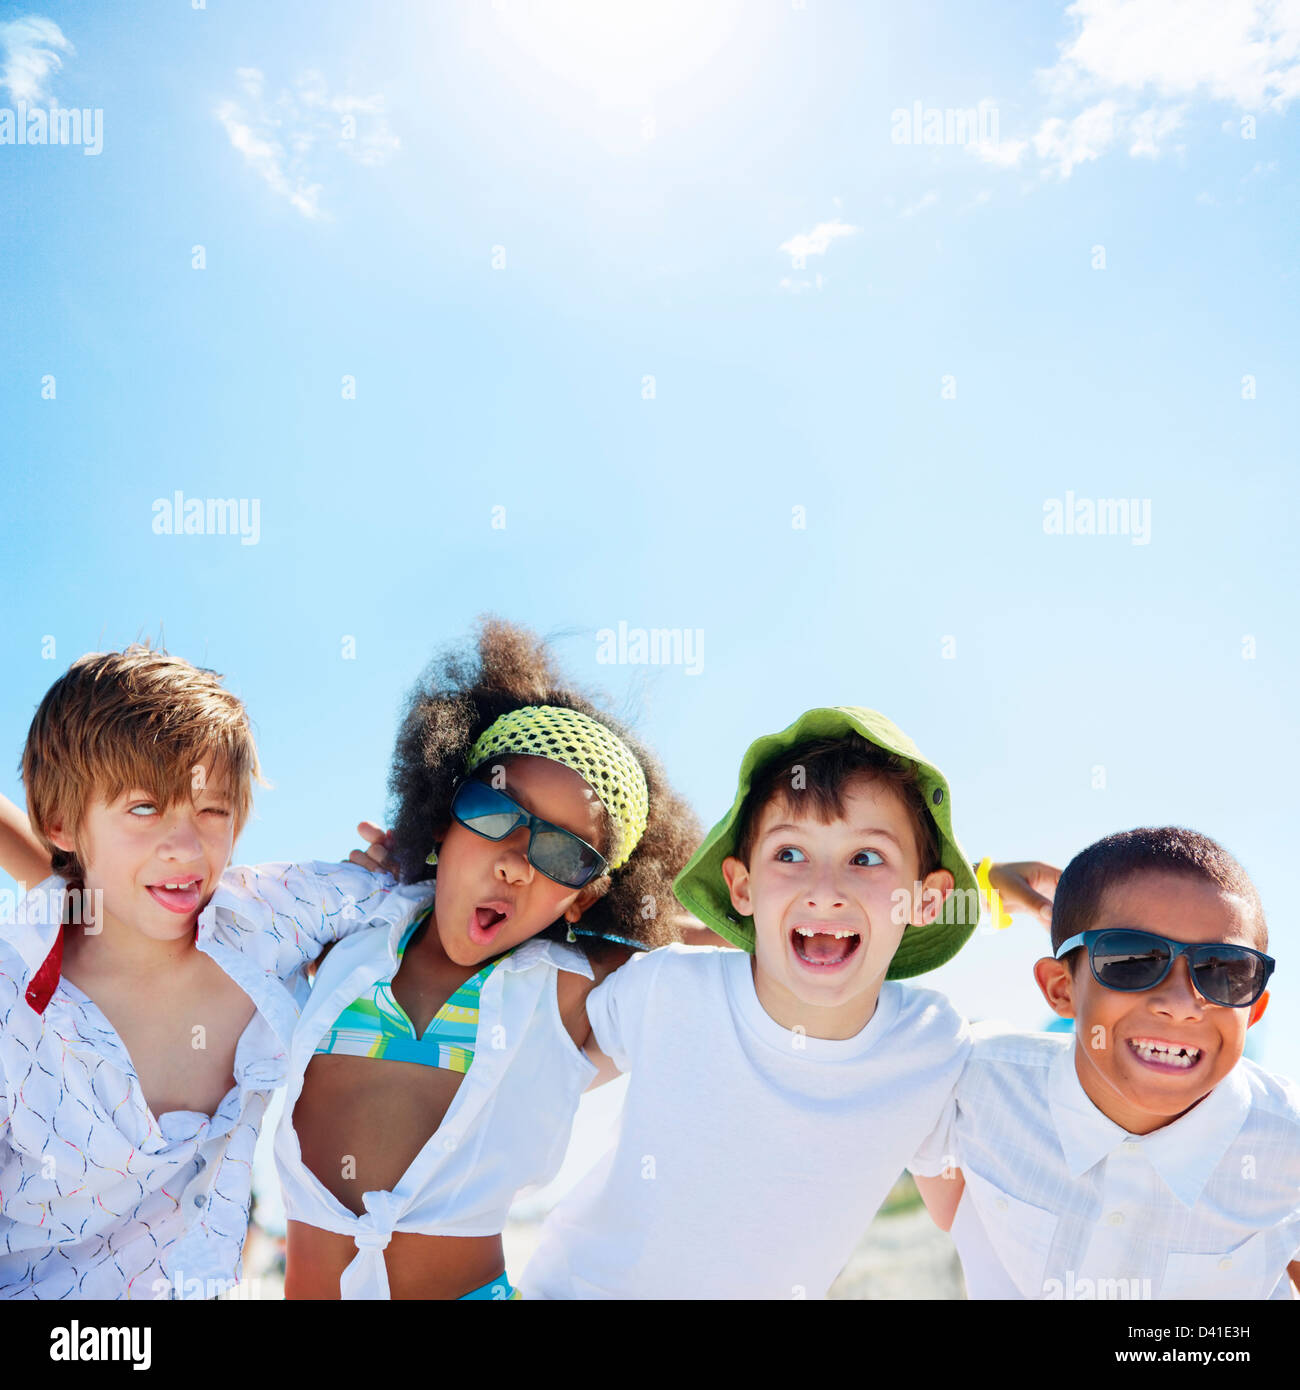 school-age children having fun on a sunny day at the beach, making faces - Stock Image